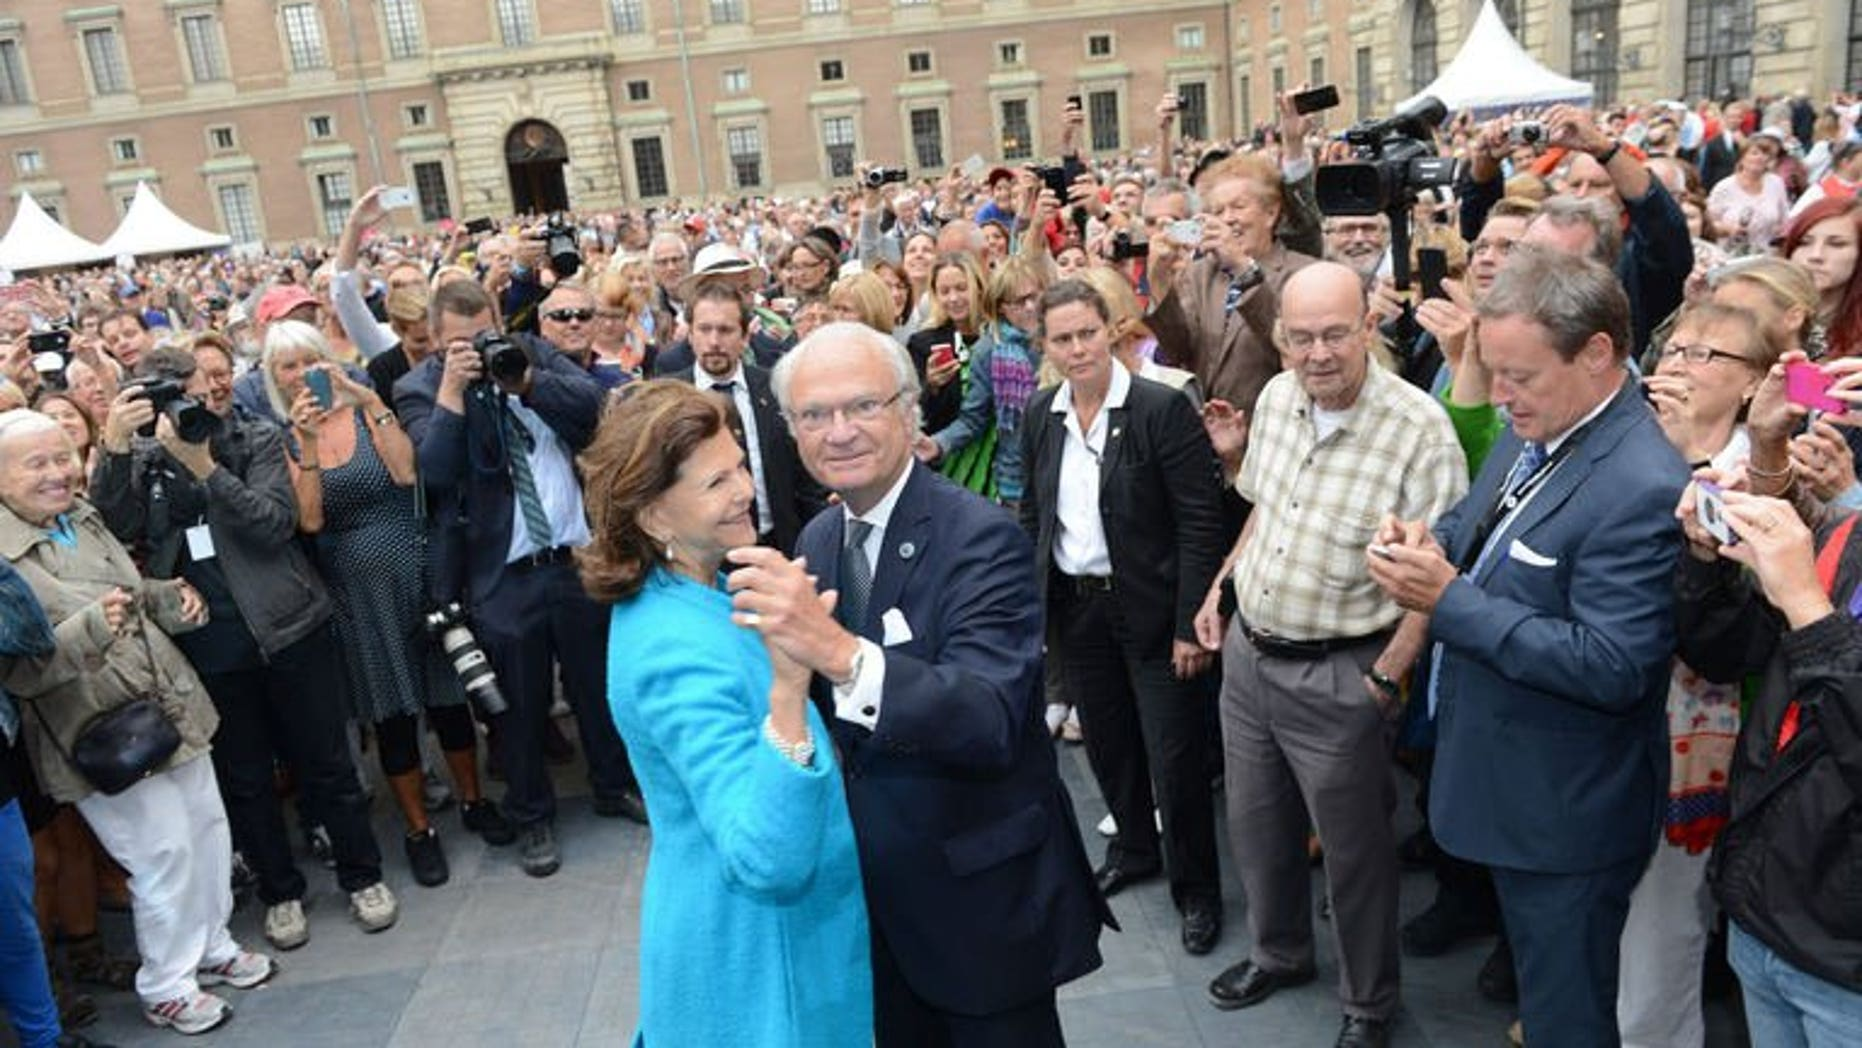 Queen Silvia and King Carl Gustaf of Sweden lead a dance in the palace courtyard in Stockholm on September 15, 2013.